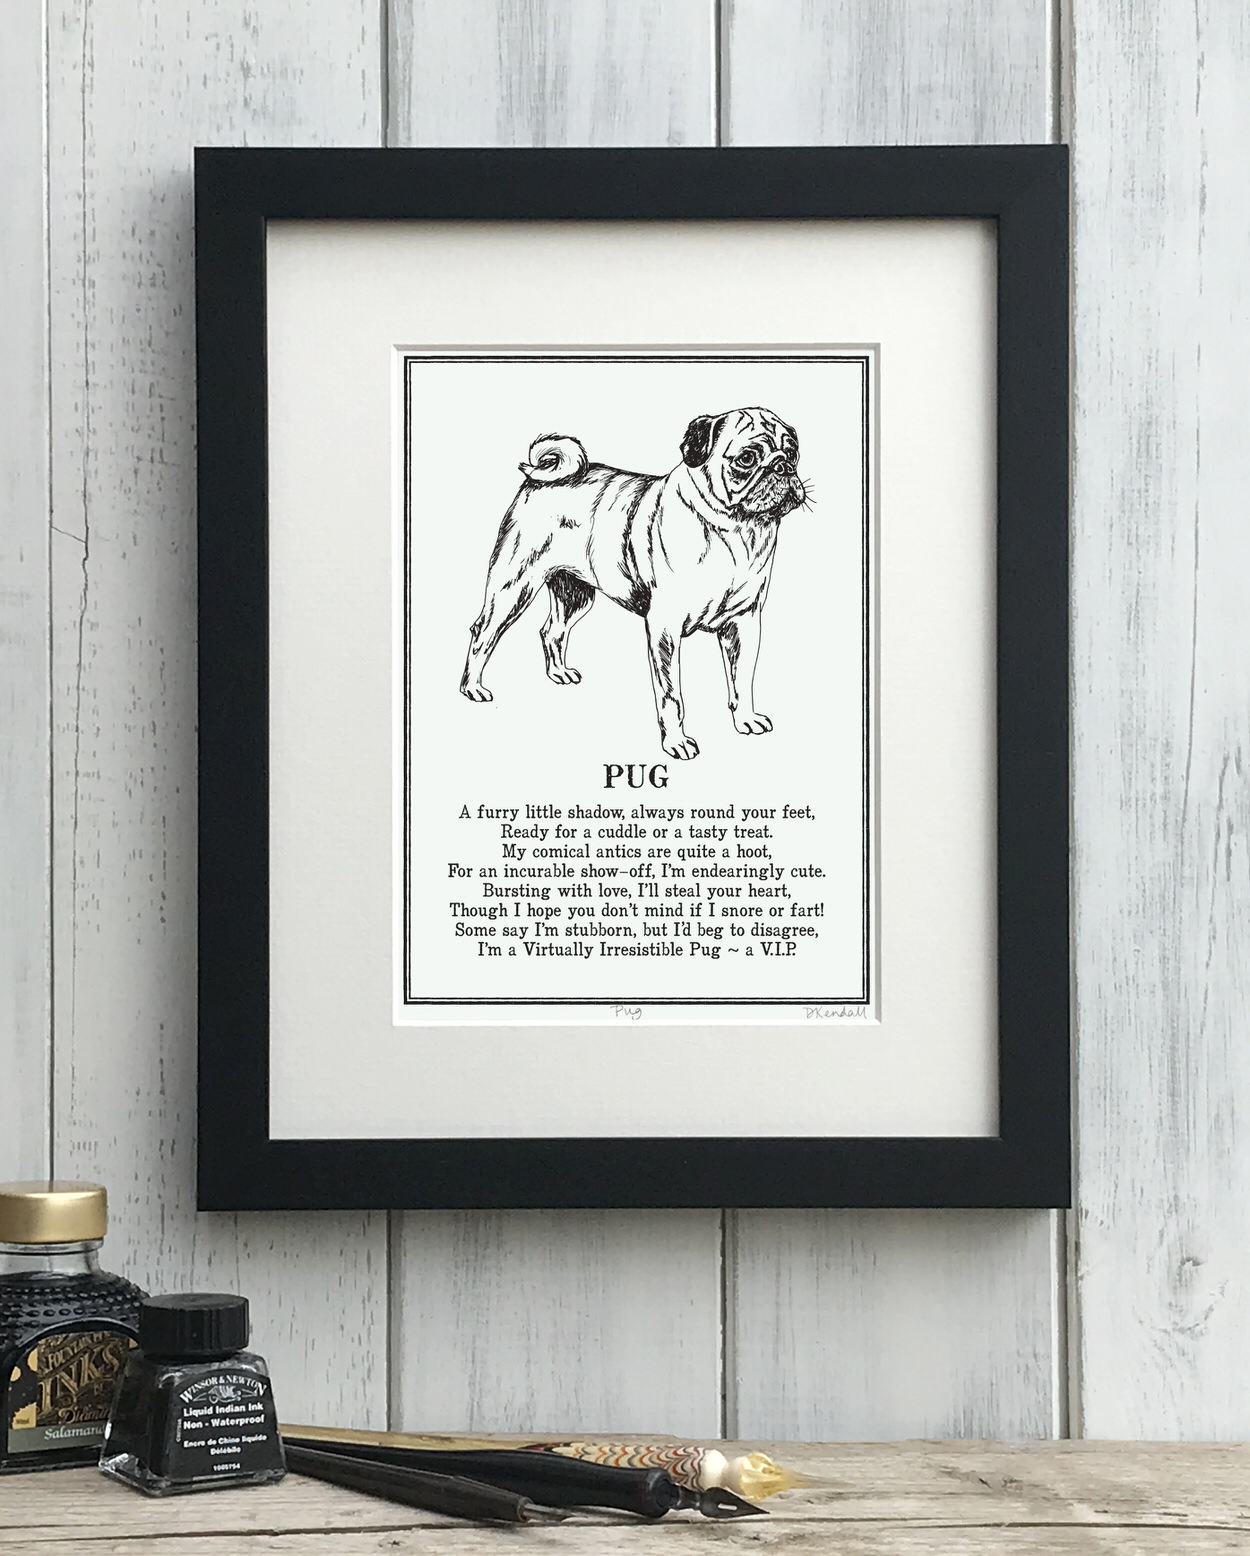 Pug print illustrated poem by The Enlightened Hound